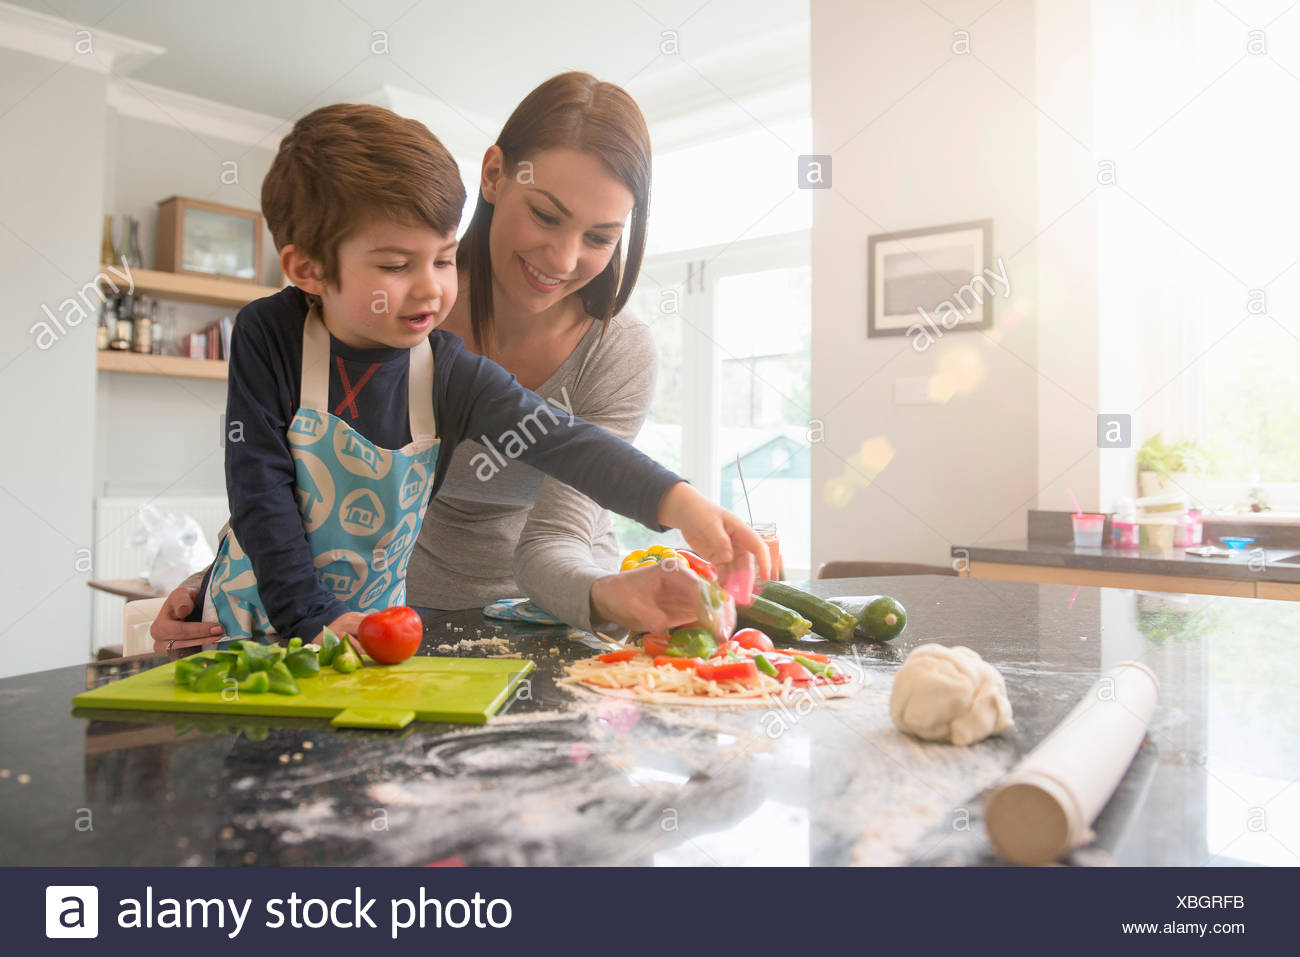 Mother and son preparing pizza together in kitchen - Stock Image